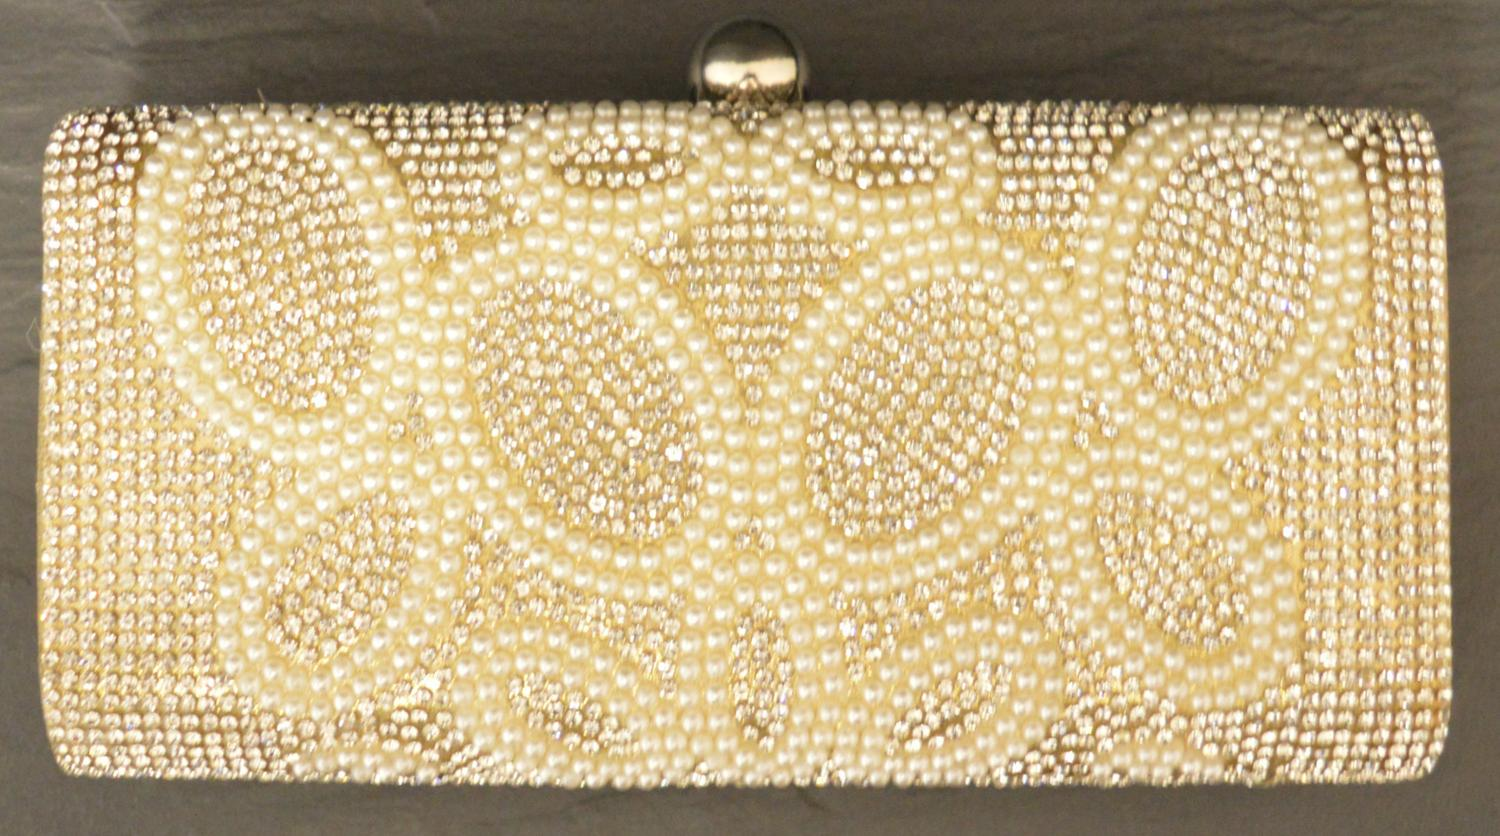 Diamante and Pearl Encrusted Clutch Bag